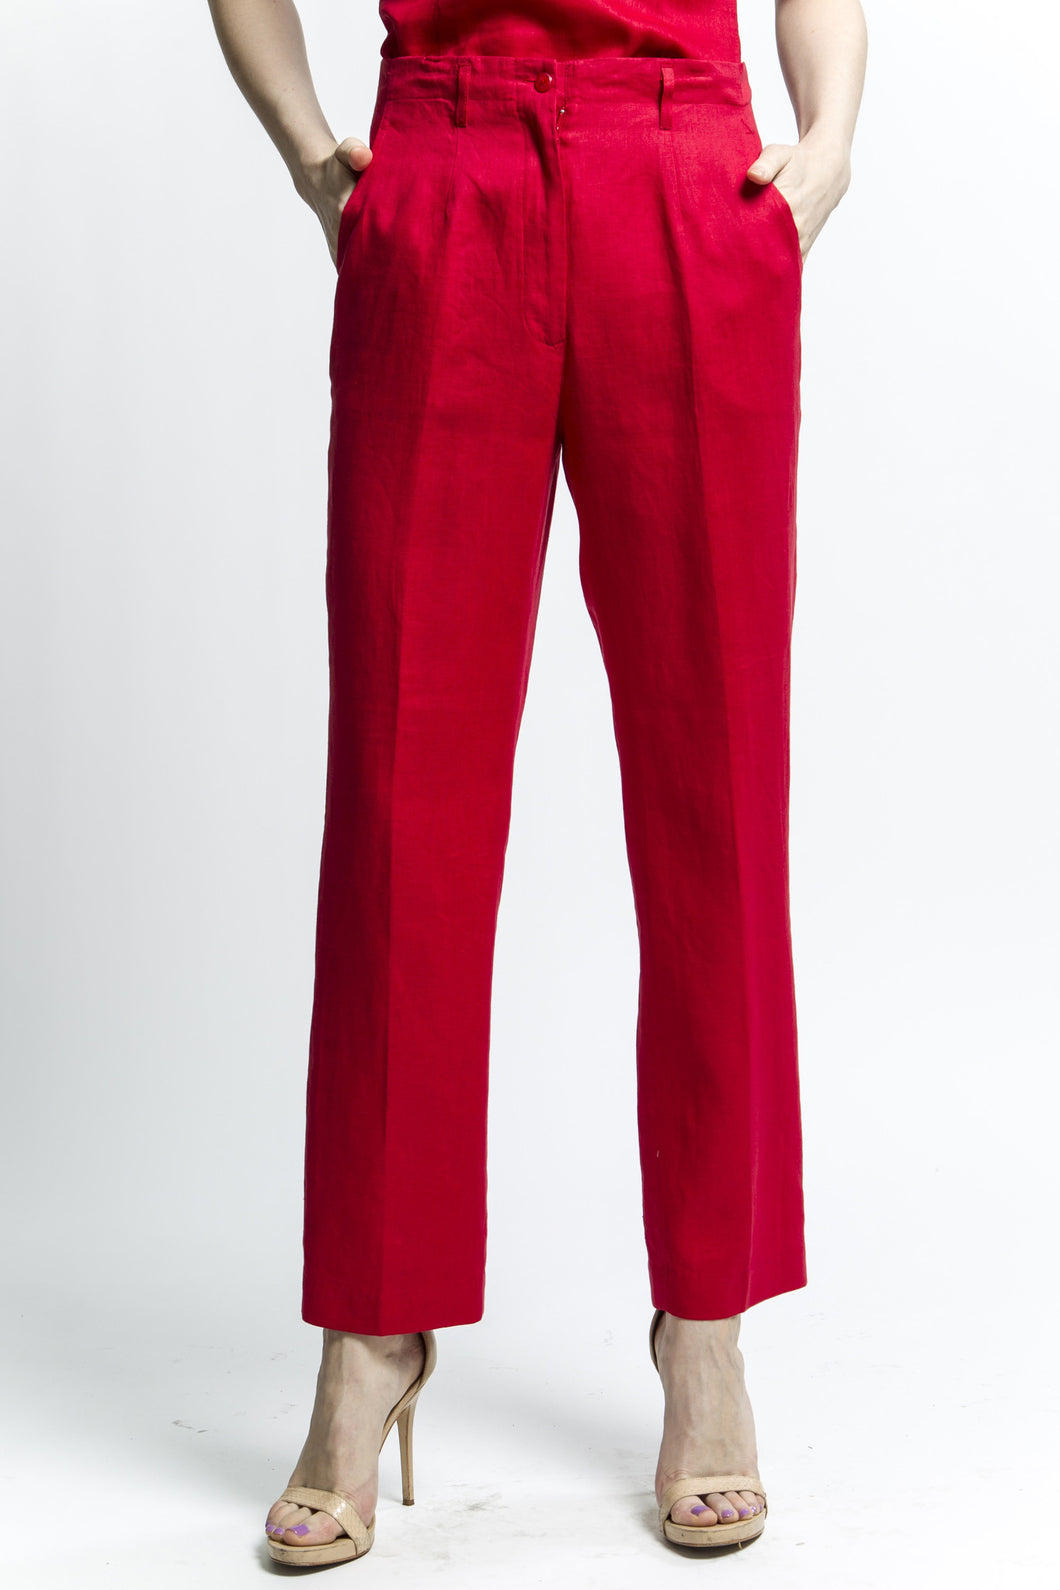 Classic Pants (Red)  Style 8066